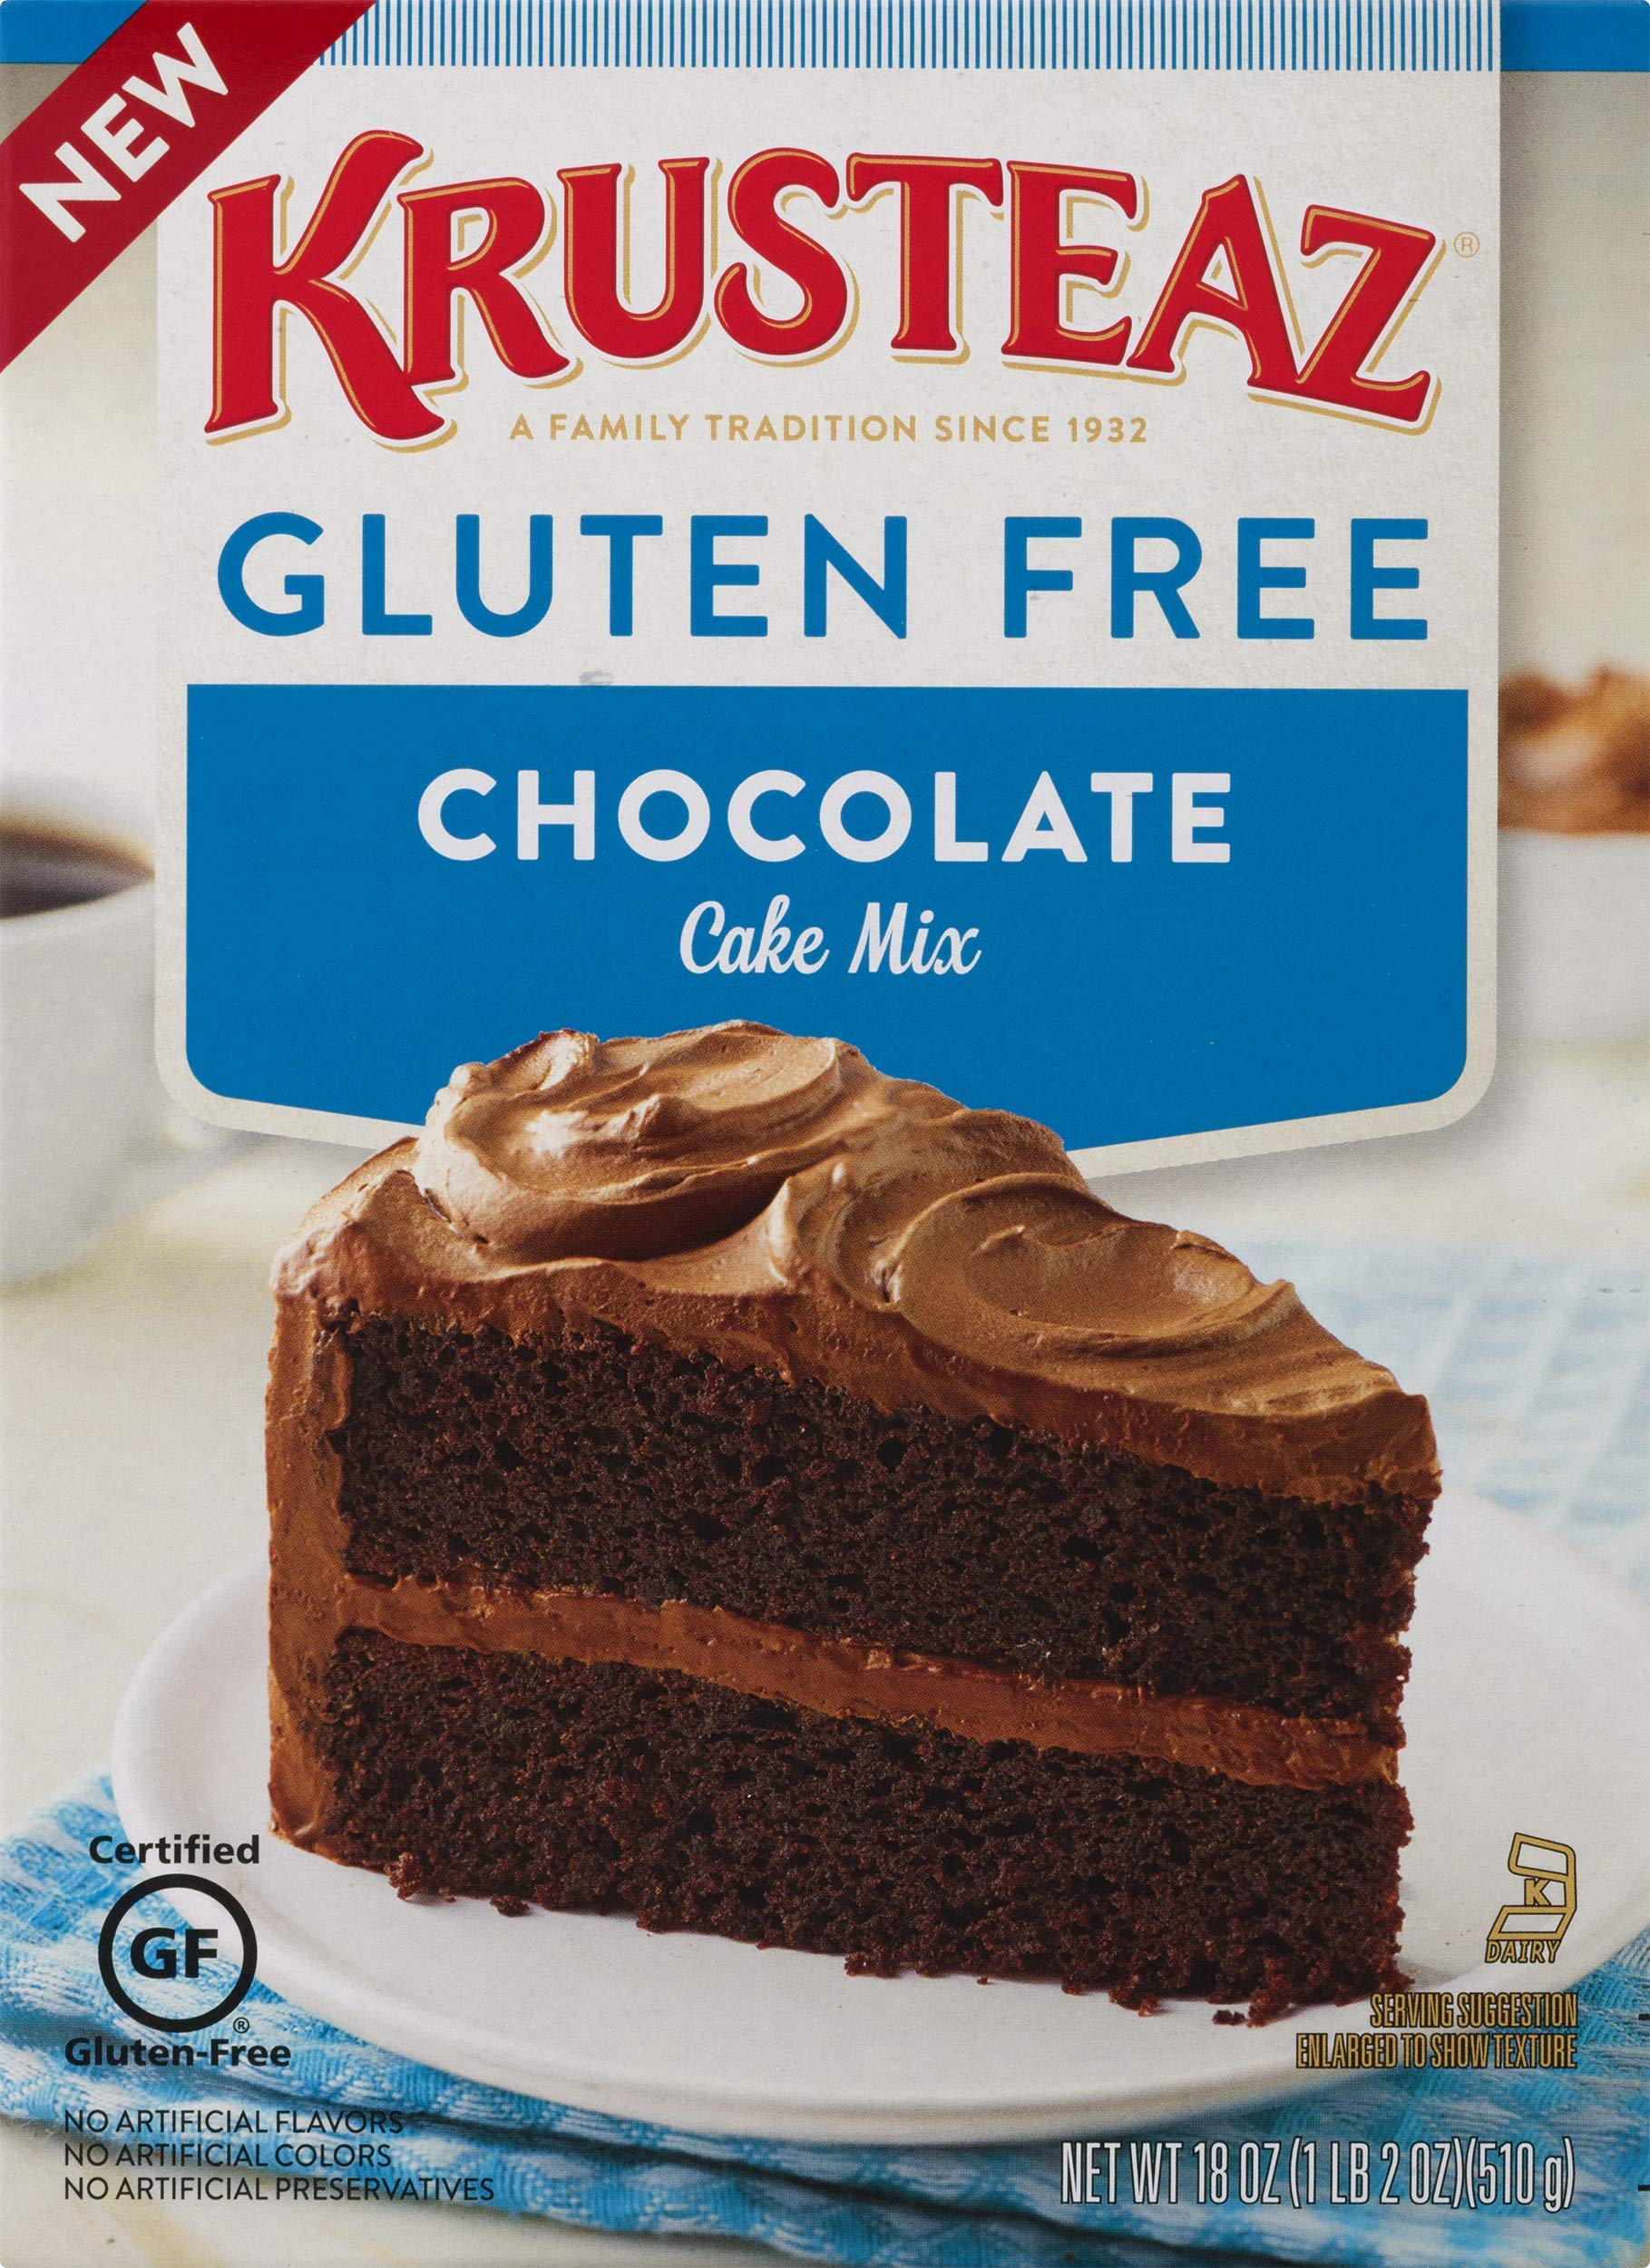 Krusteaz Gluten Free Chocolate Cake Mix, 18 Ounce, Pack of 8 by Krusteaz